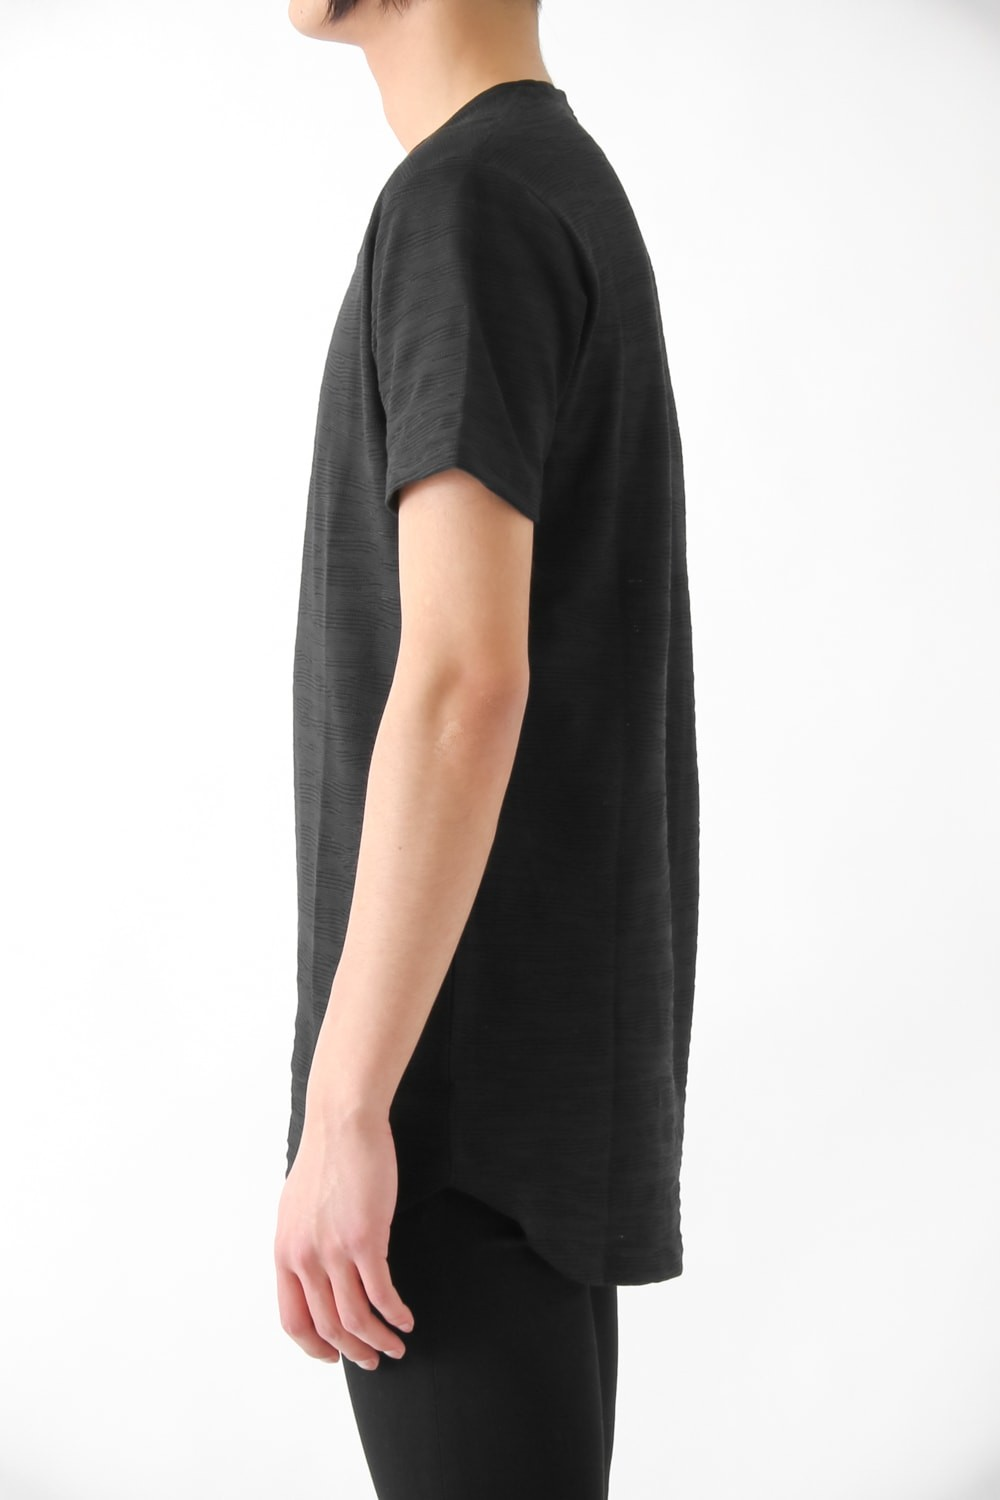 17S COOL MAX Links Jacquard Loose T